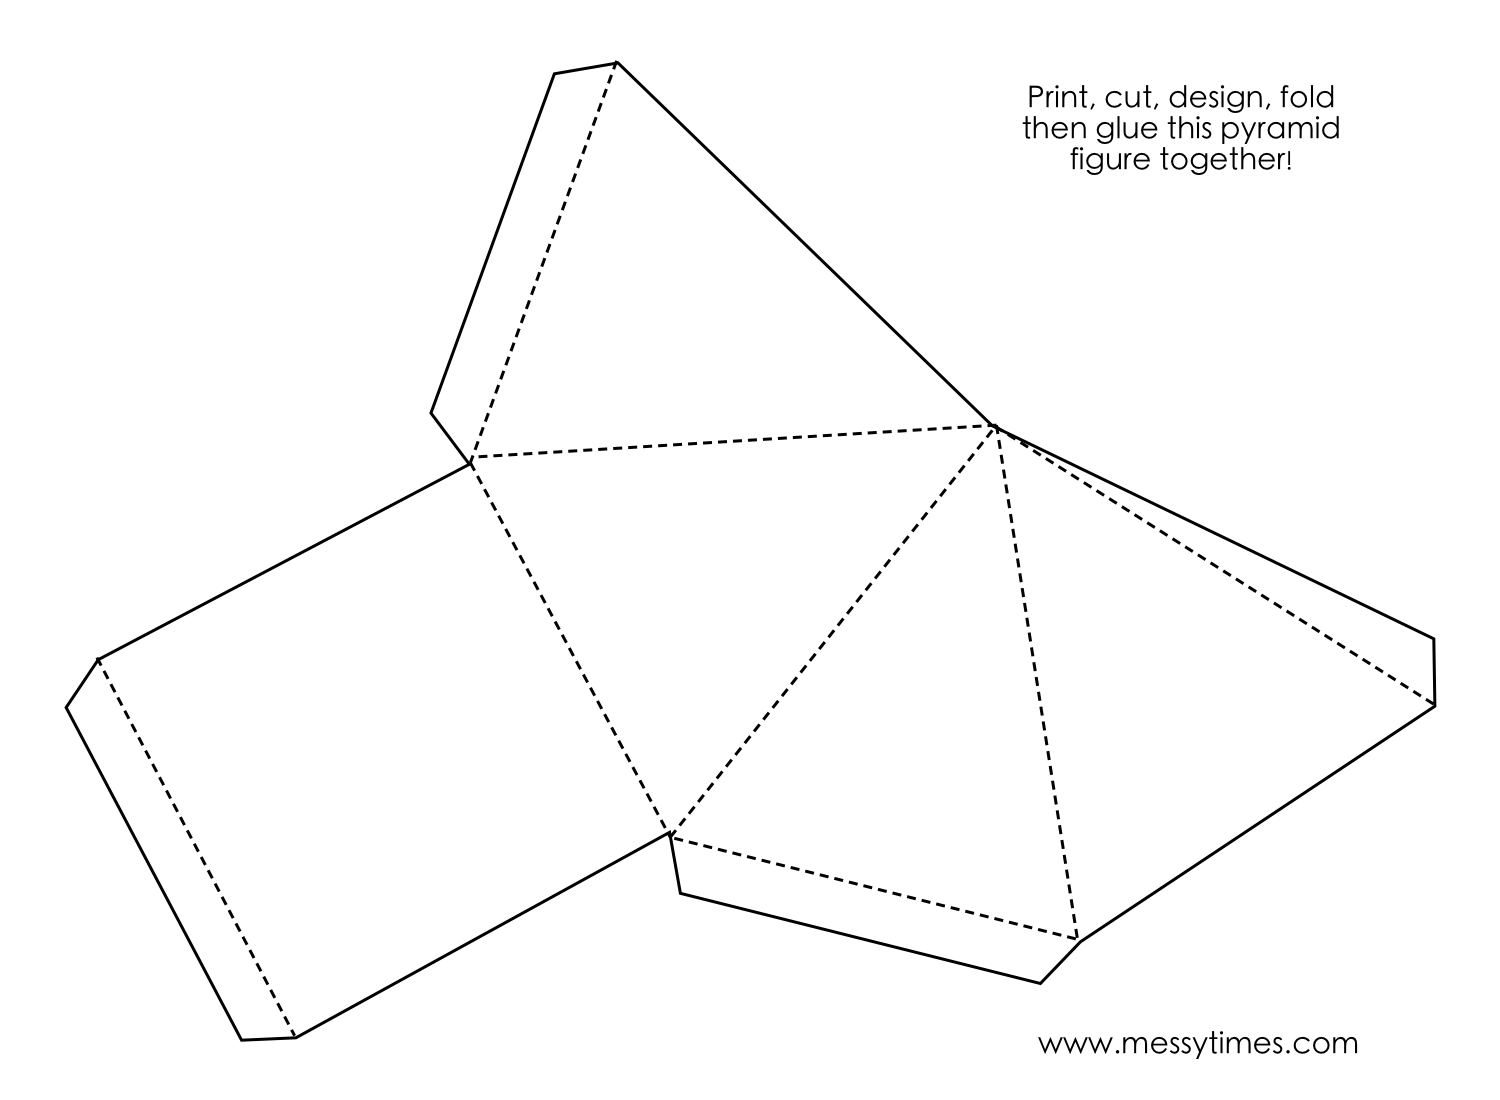 A 3d Pyramid Object To Cut Design Fold And Glue Together